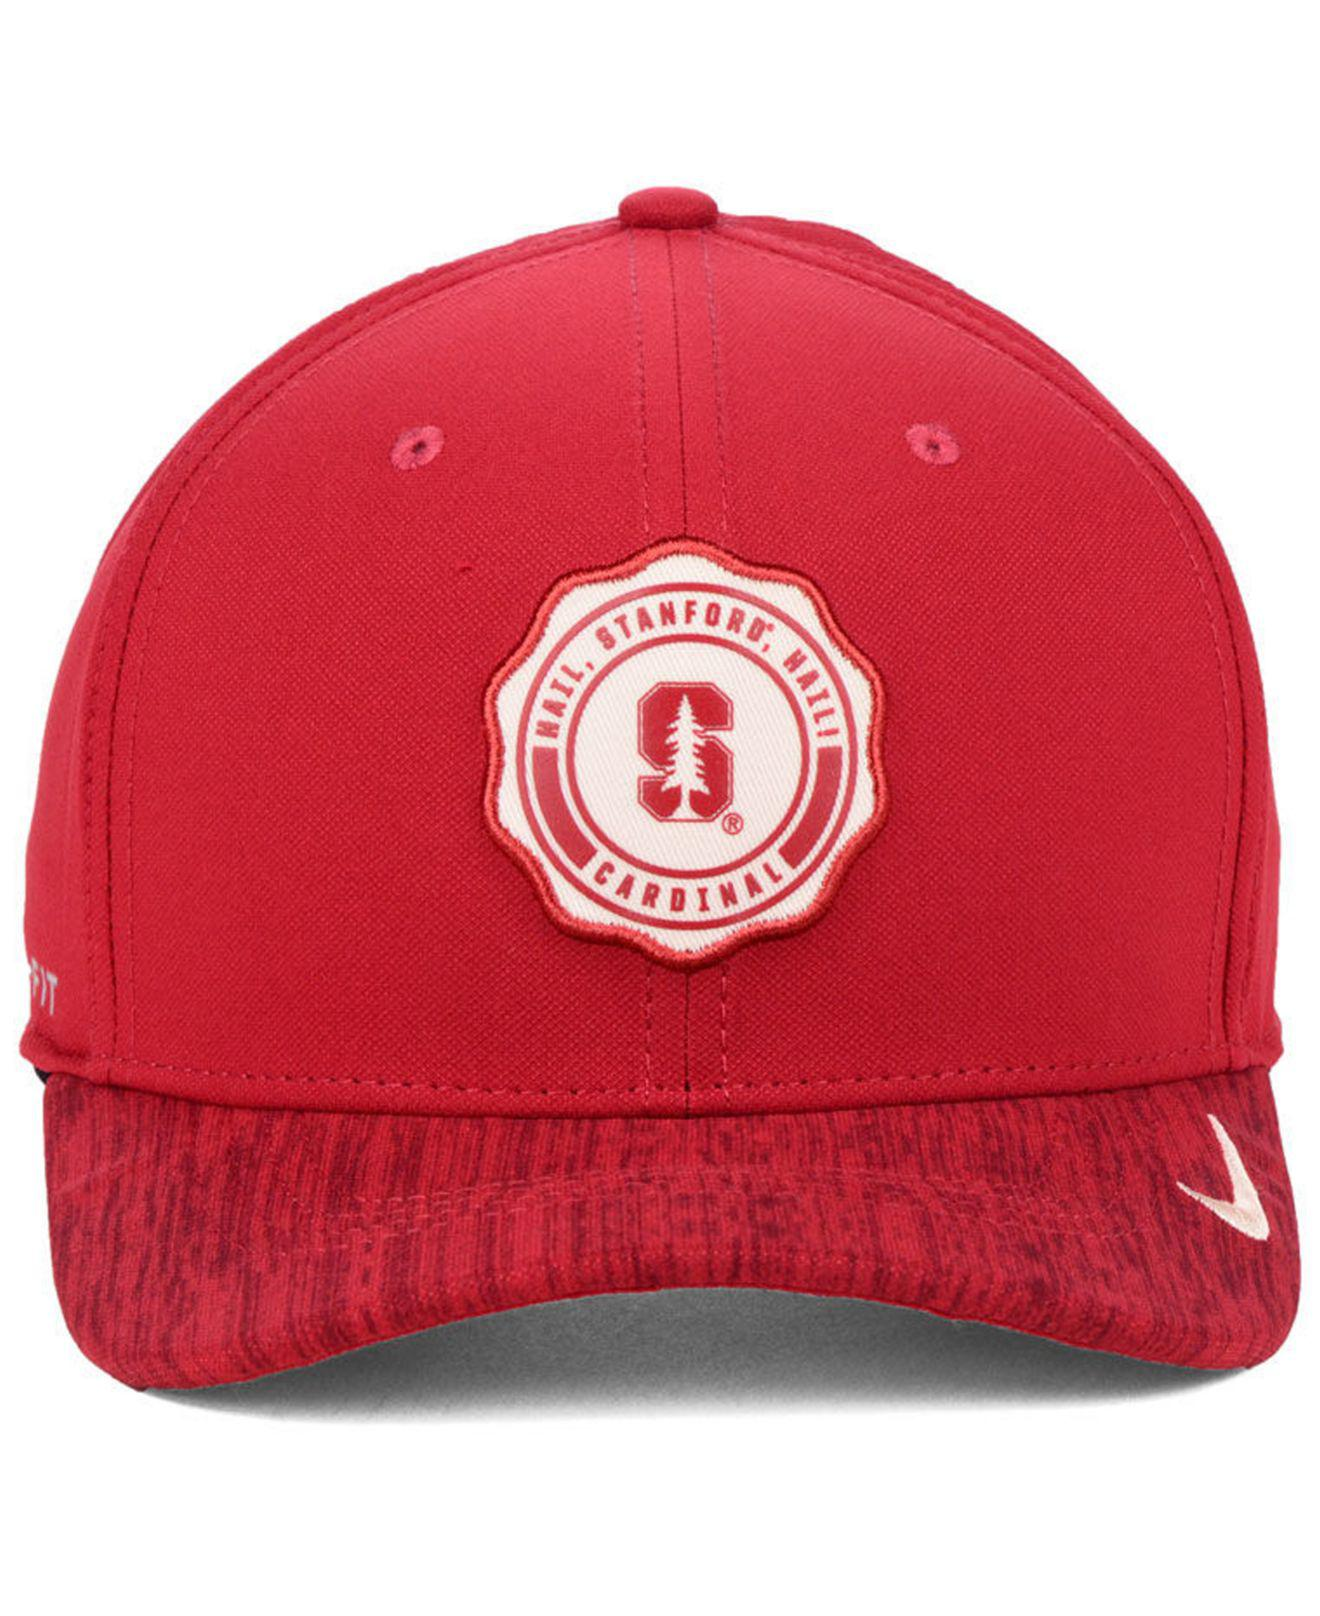 5cfccd15d90 Lyst - Nike Stanford Cardinal Rivalry Cap in Red for Men